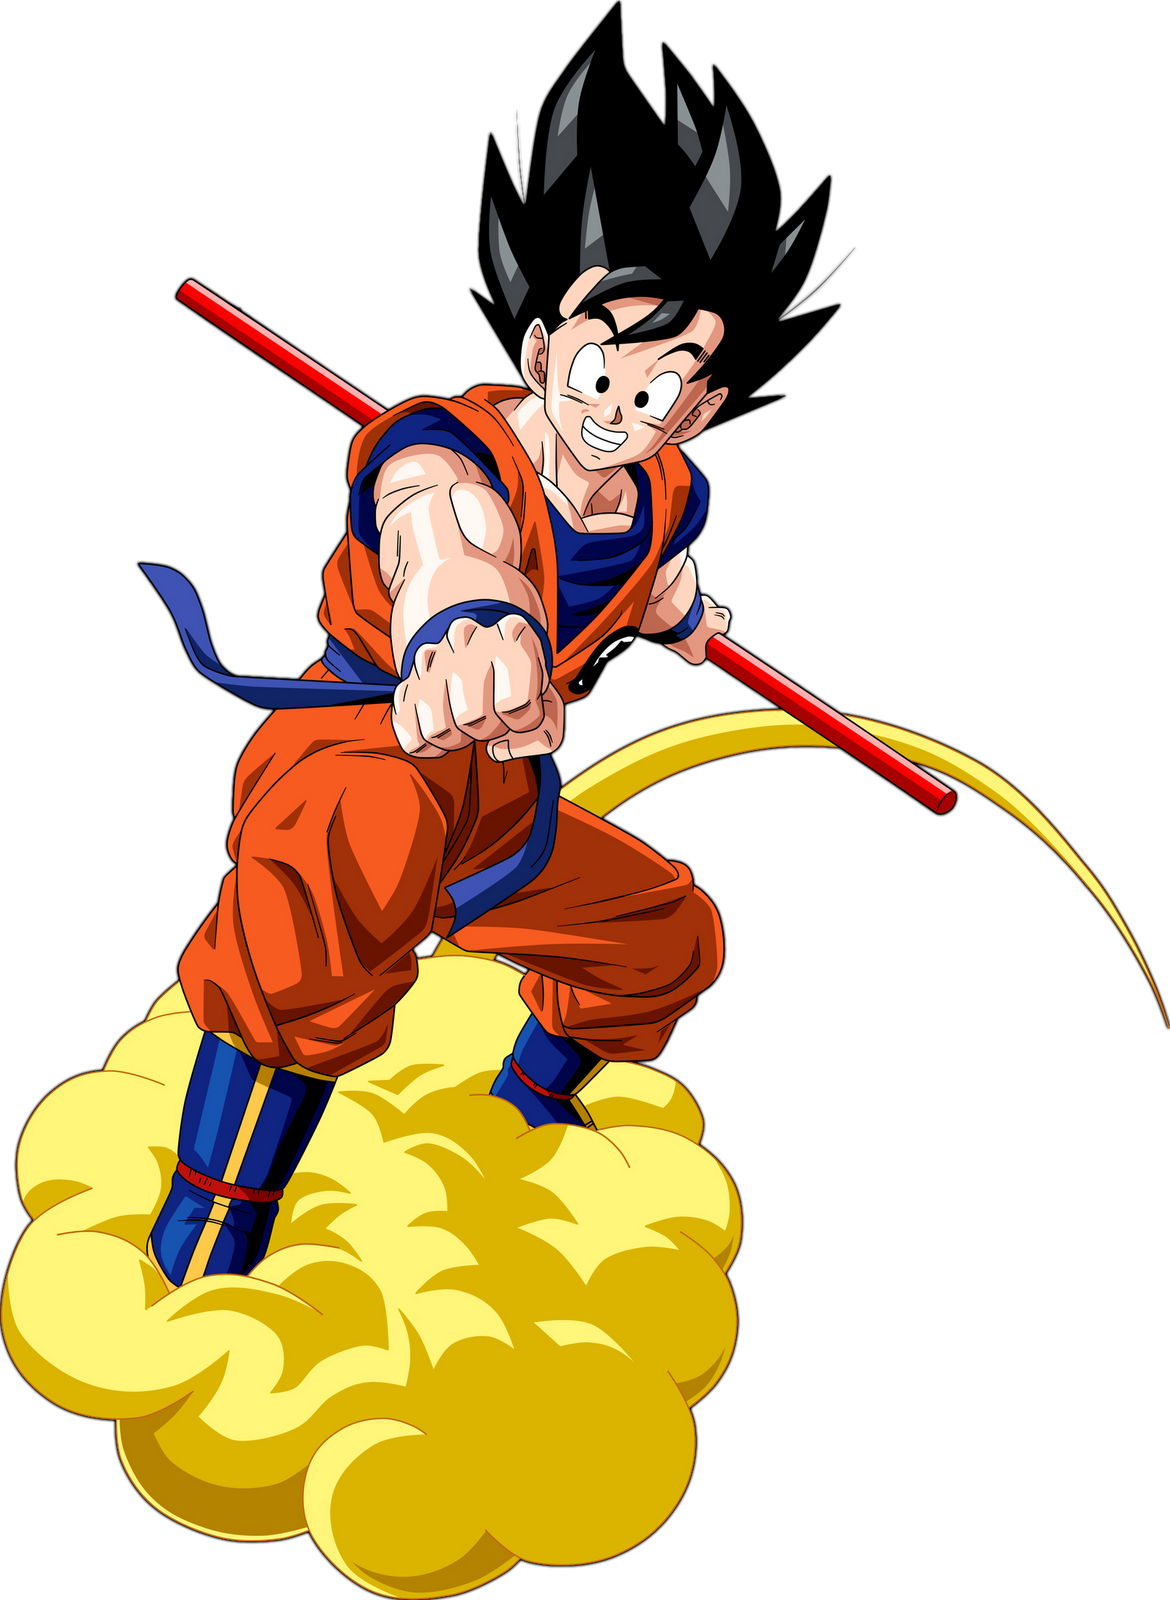 Dragon Ball Goku Transparent Background - Dbz PNG